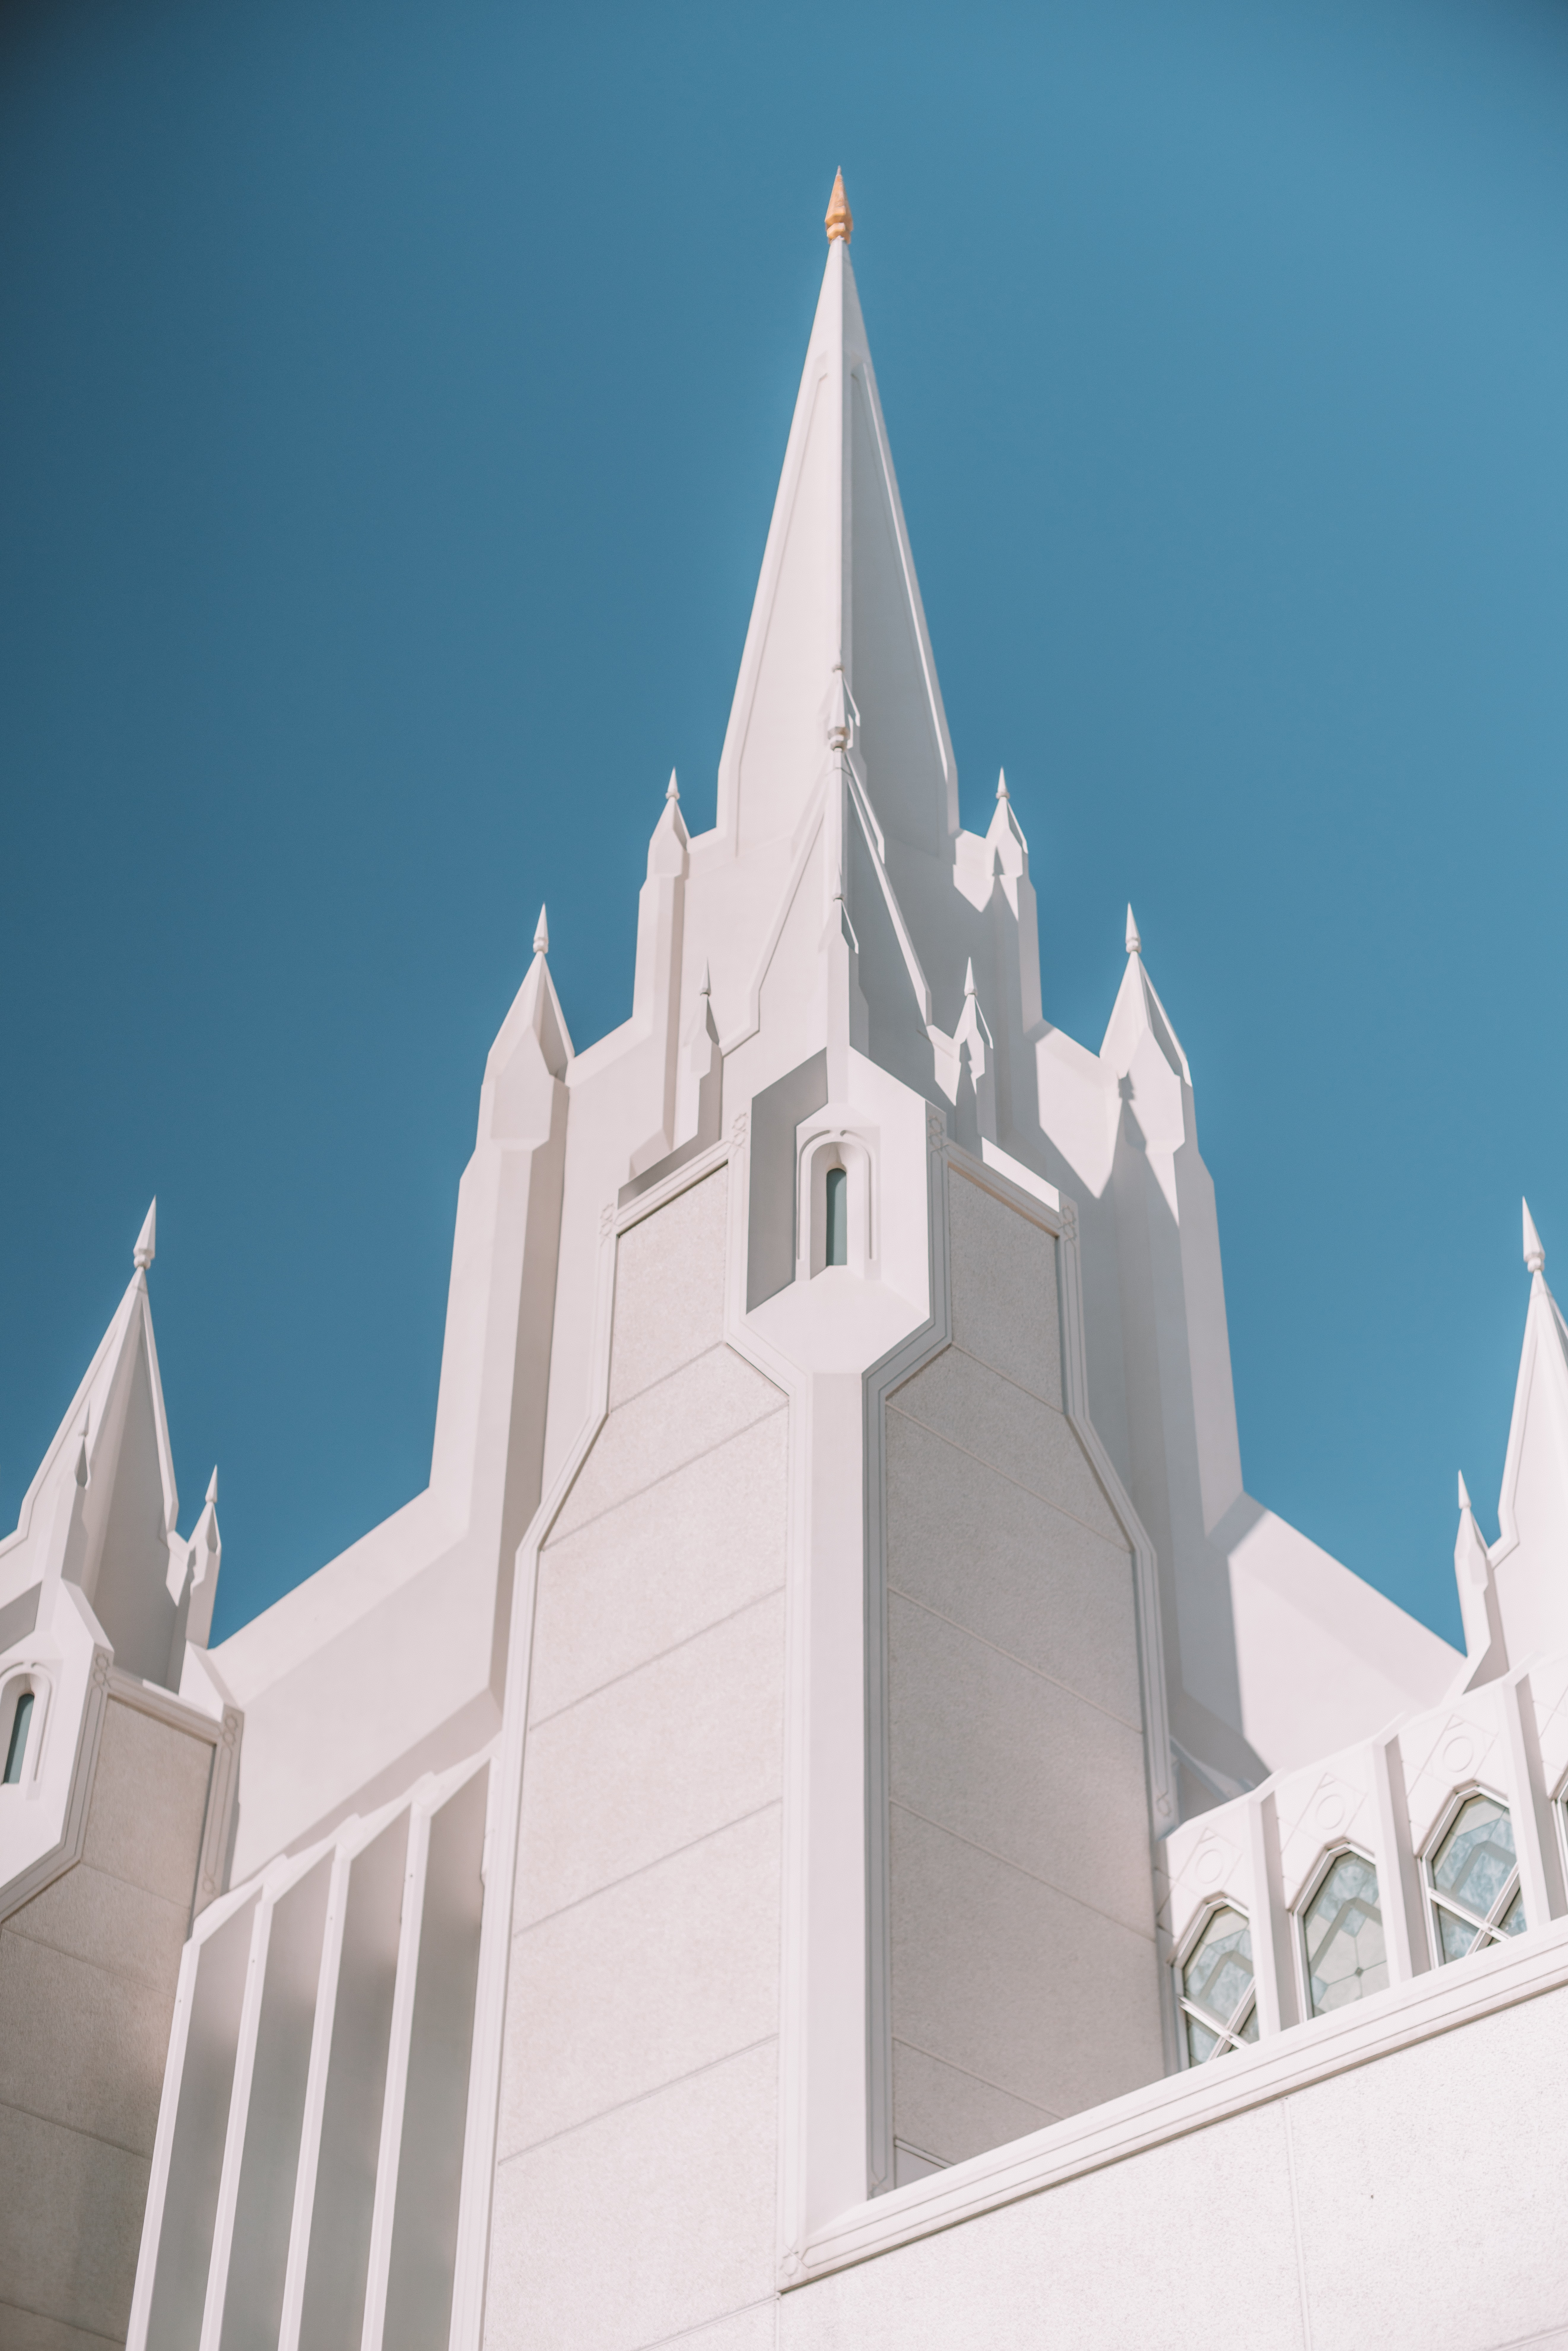 low angle photo of white cathedral